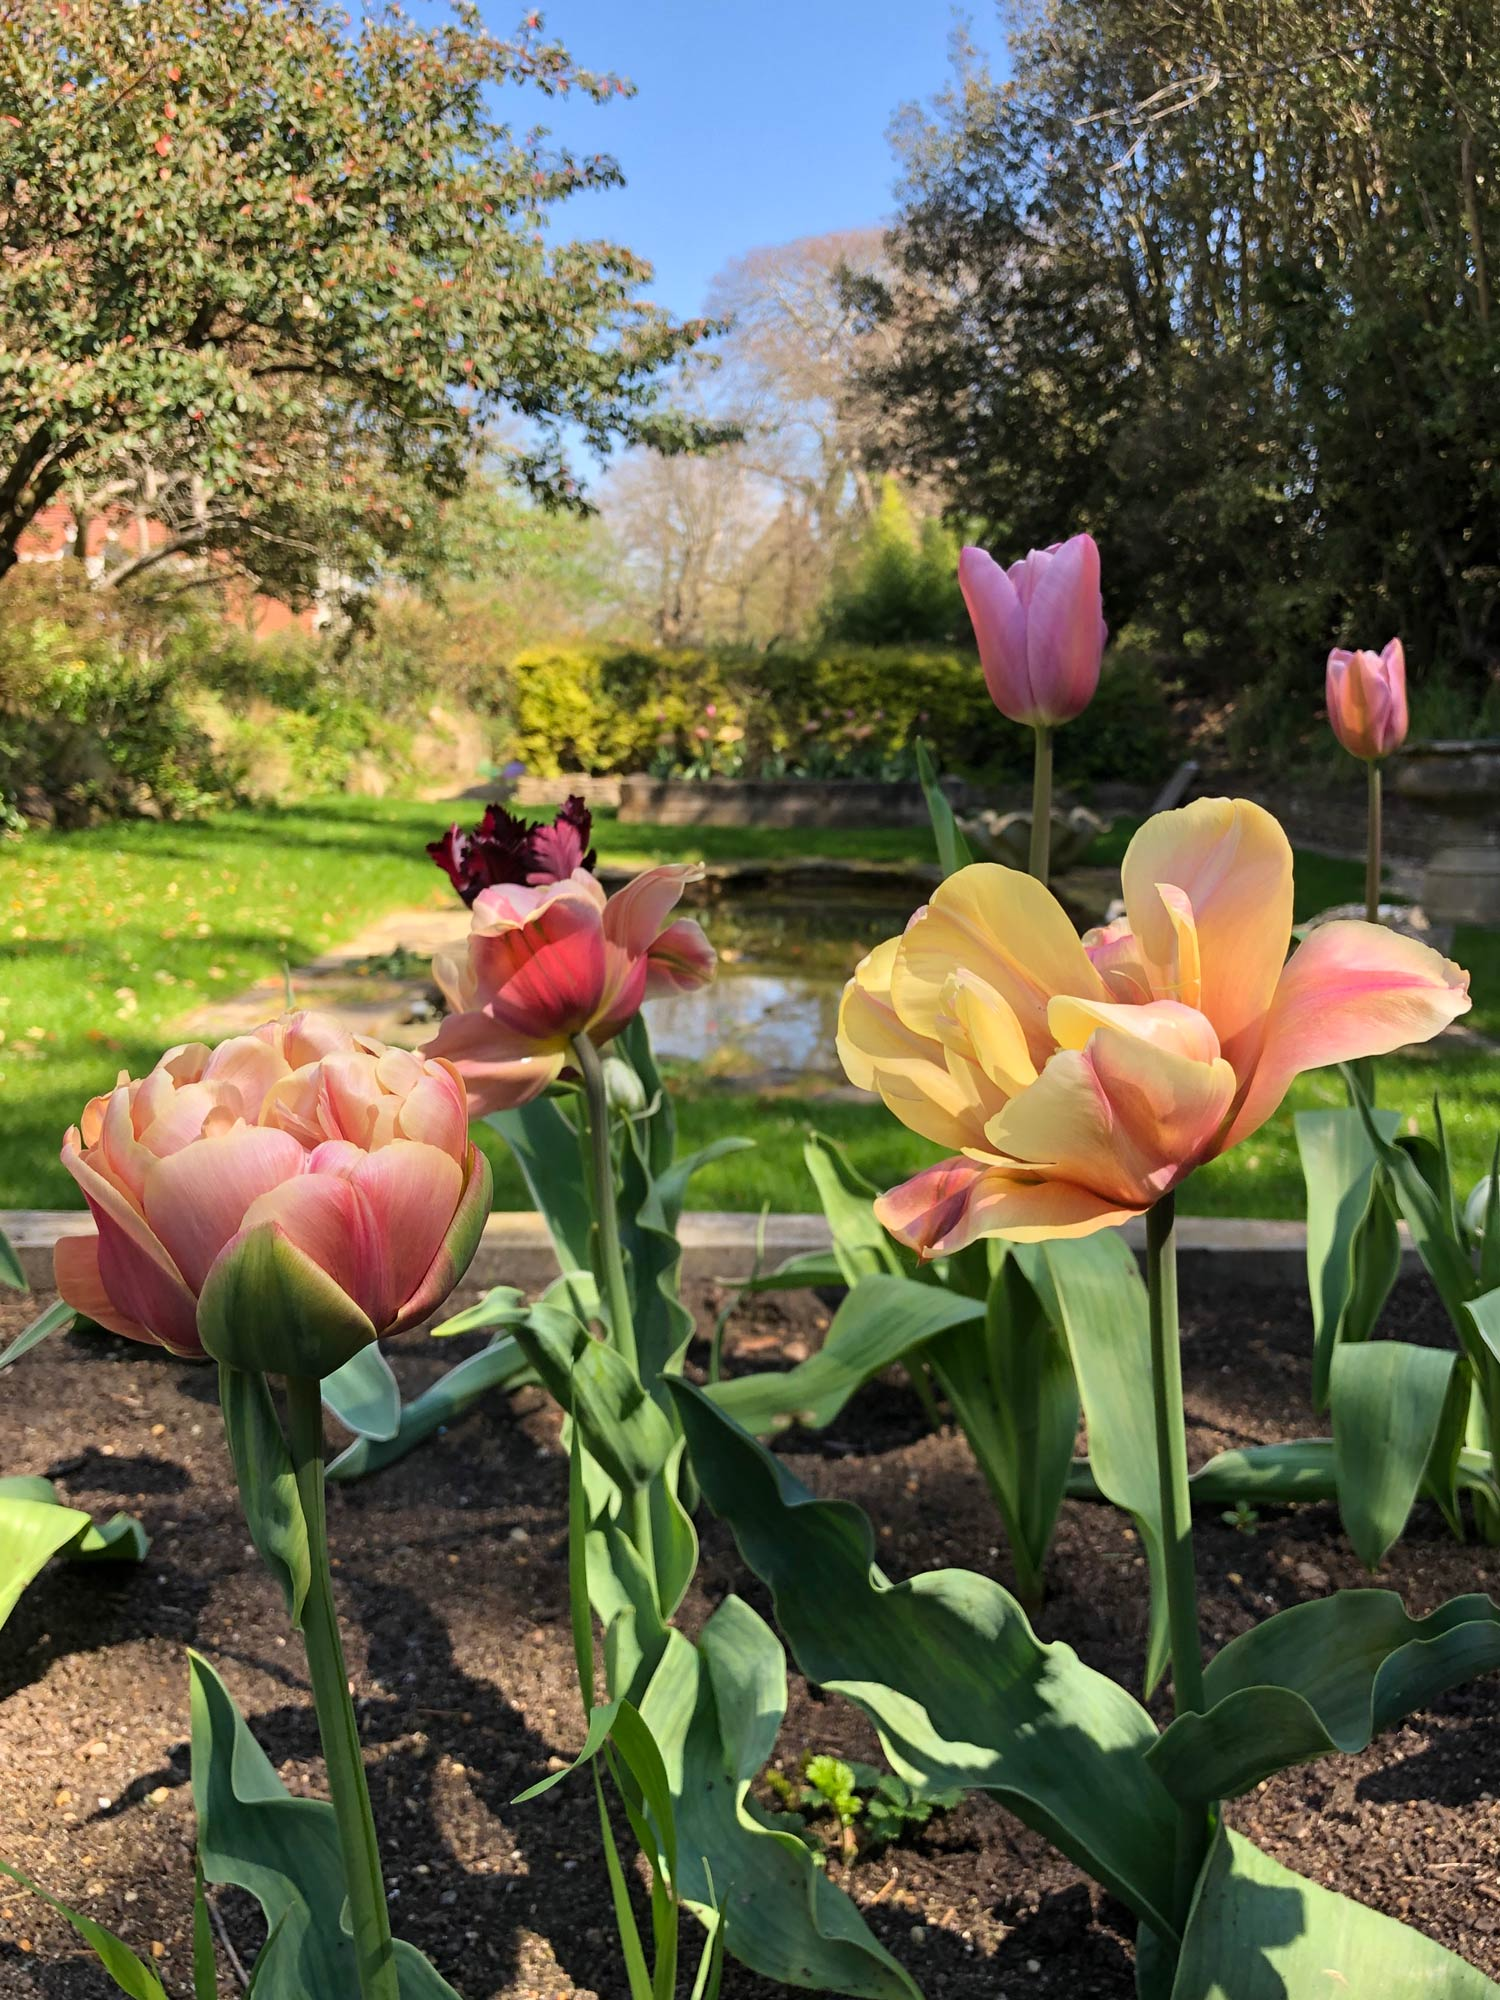 Garden pond with tulips